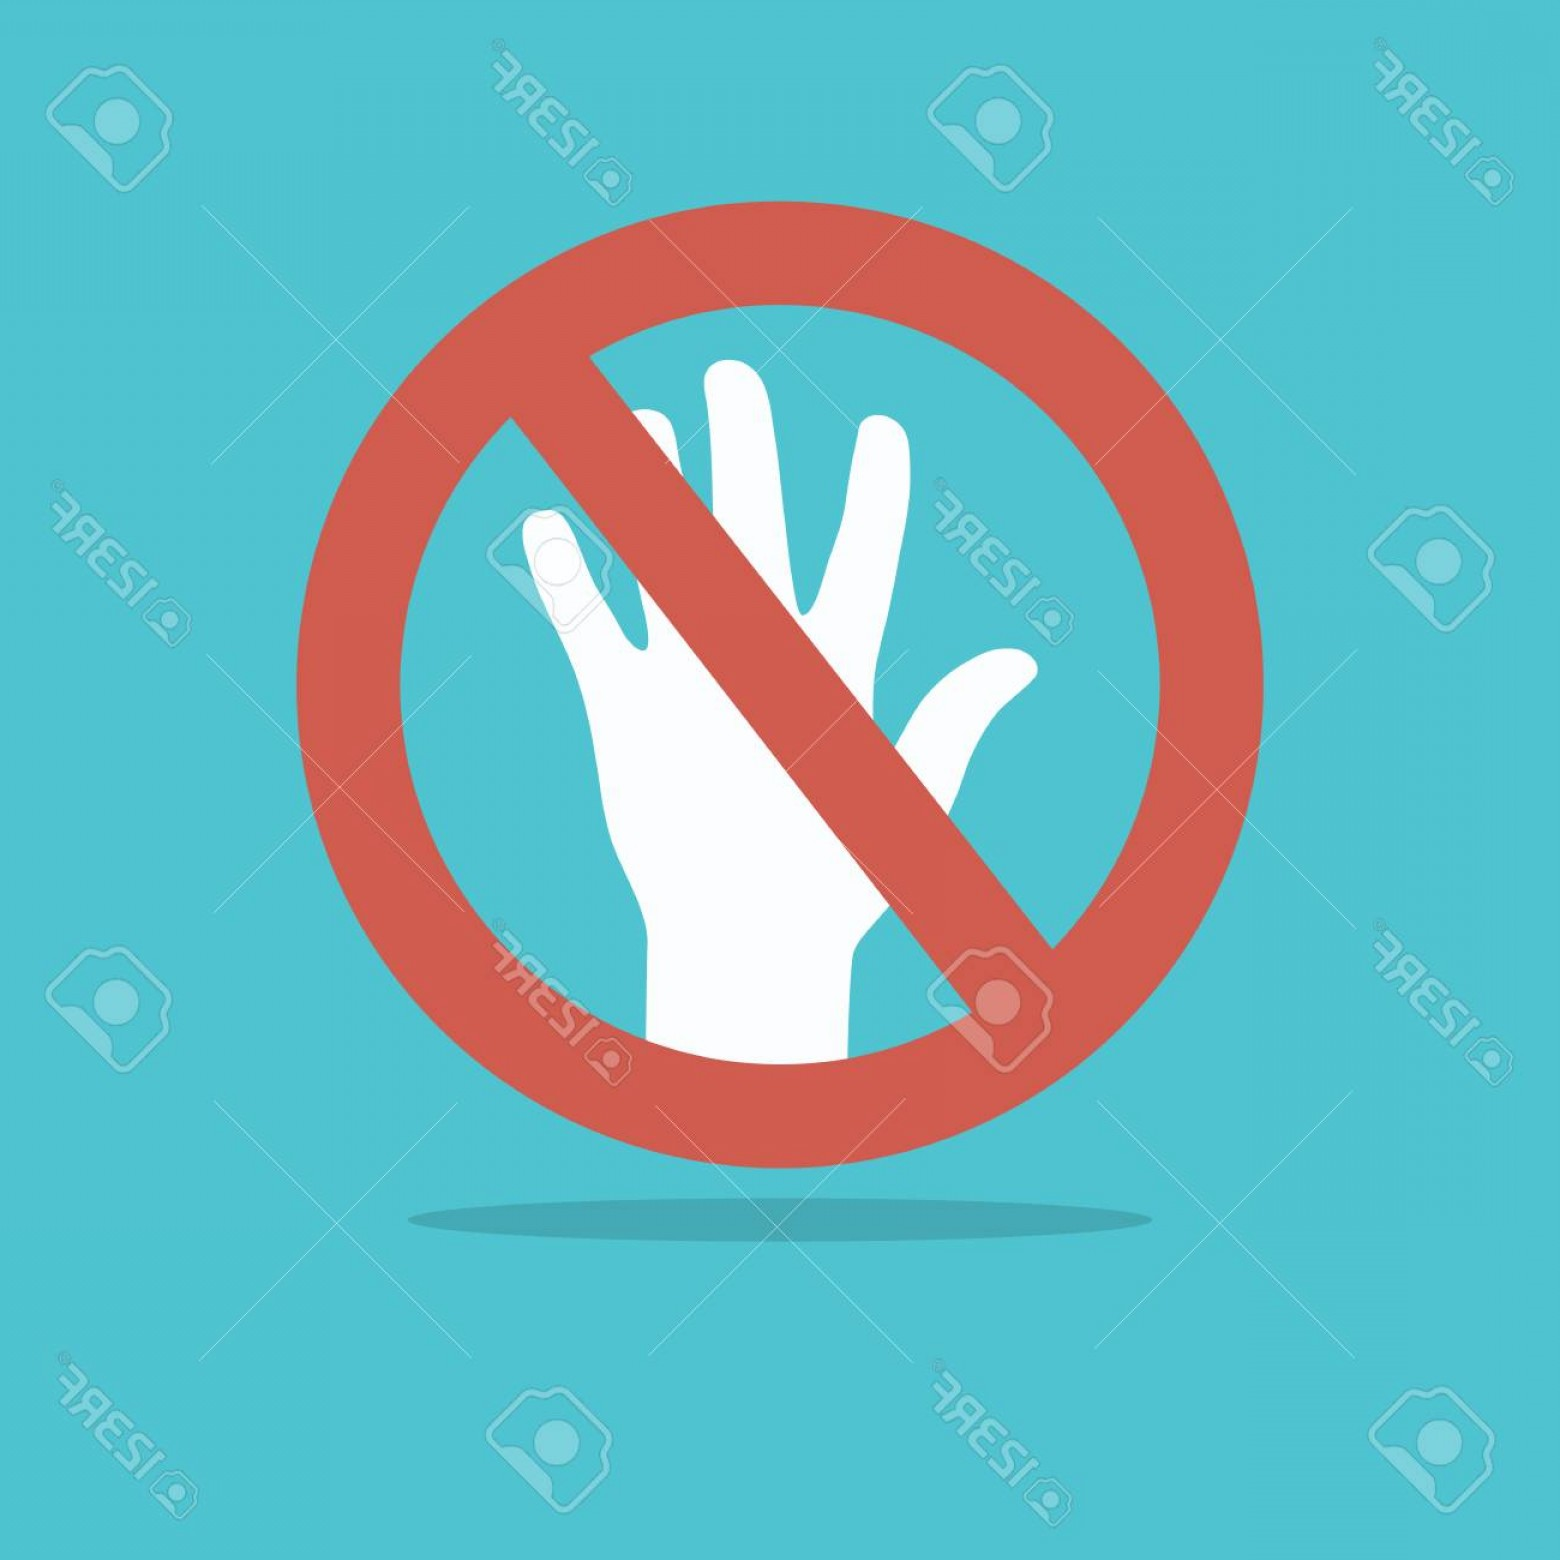 Hand Stop Vector Teal: Photostock Vector Hand Stop Sign For Web